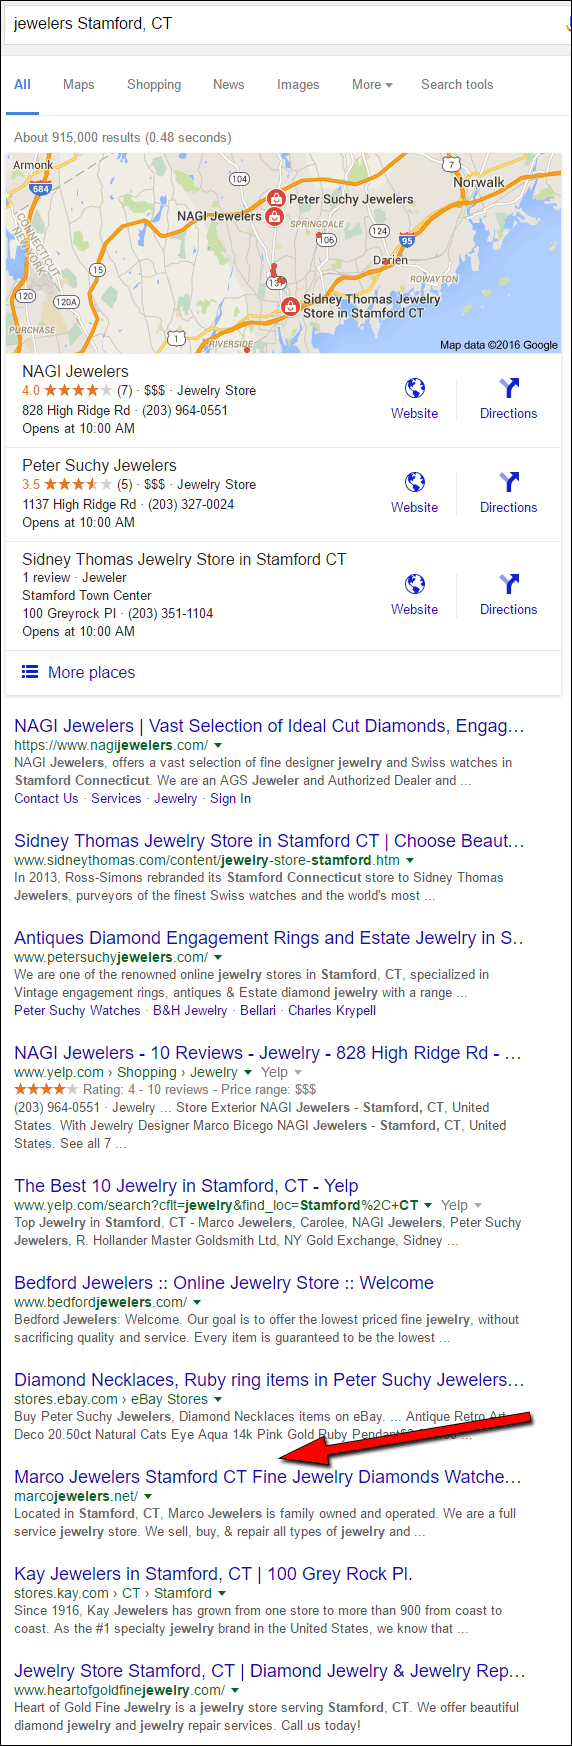 Marco Jewelers FridayFlopFix Website Review 1513-jewelers-stamford-ct-serp-17